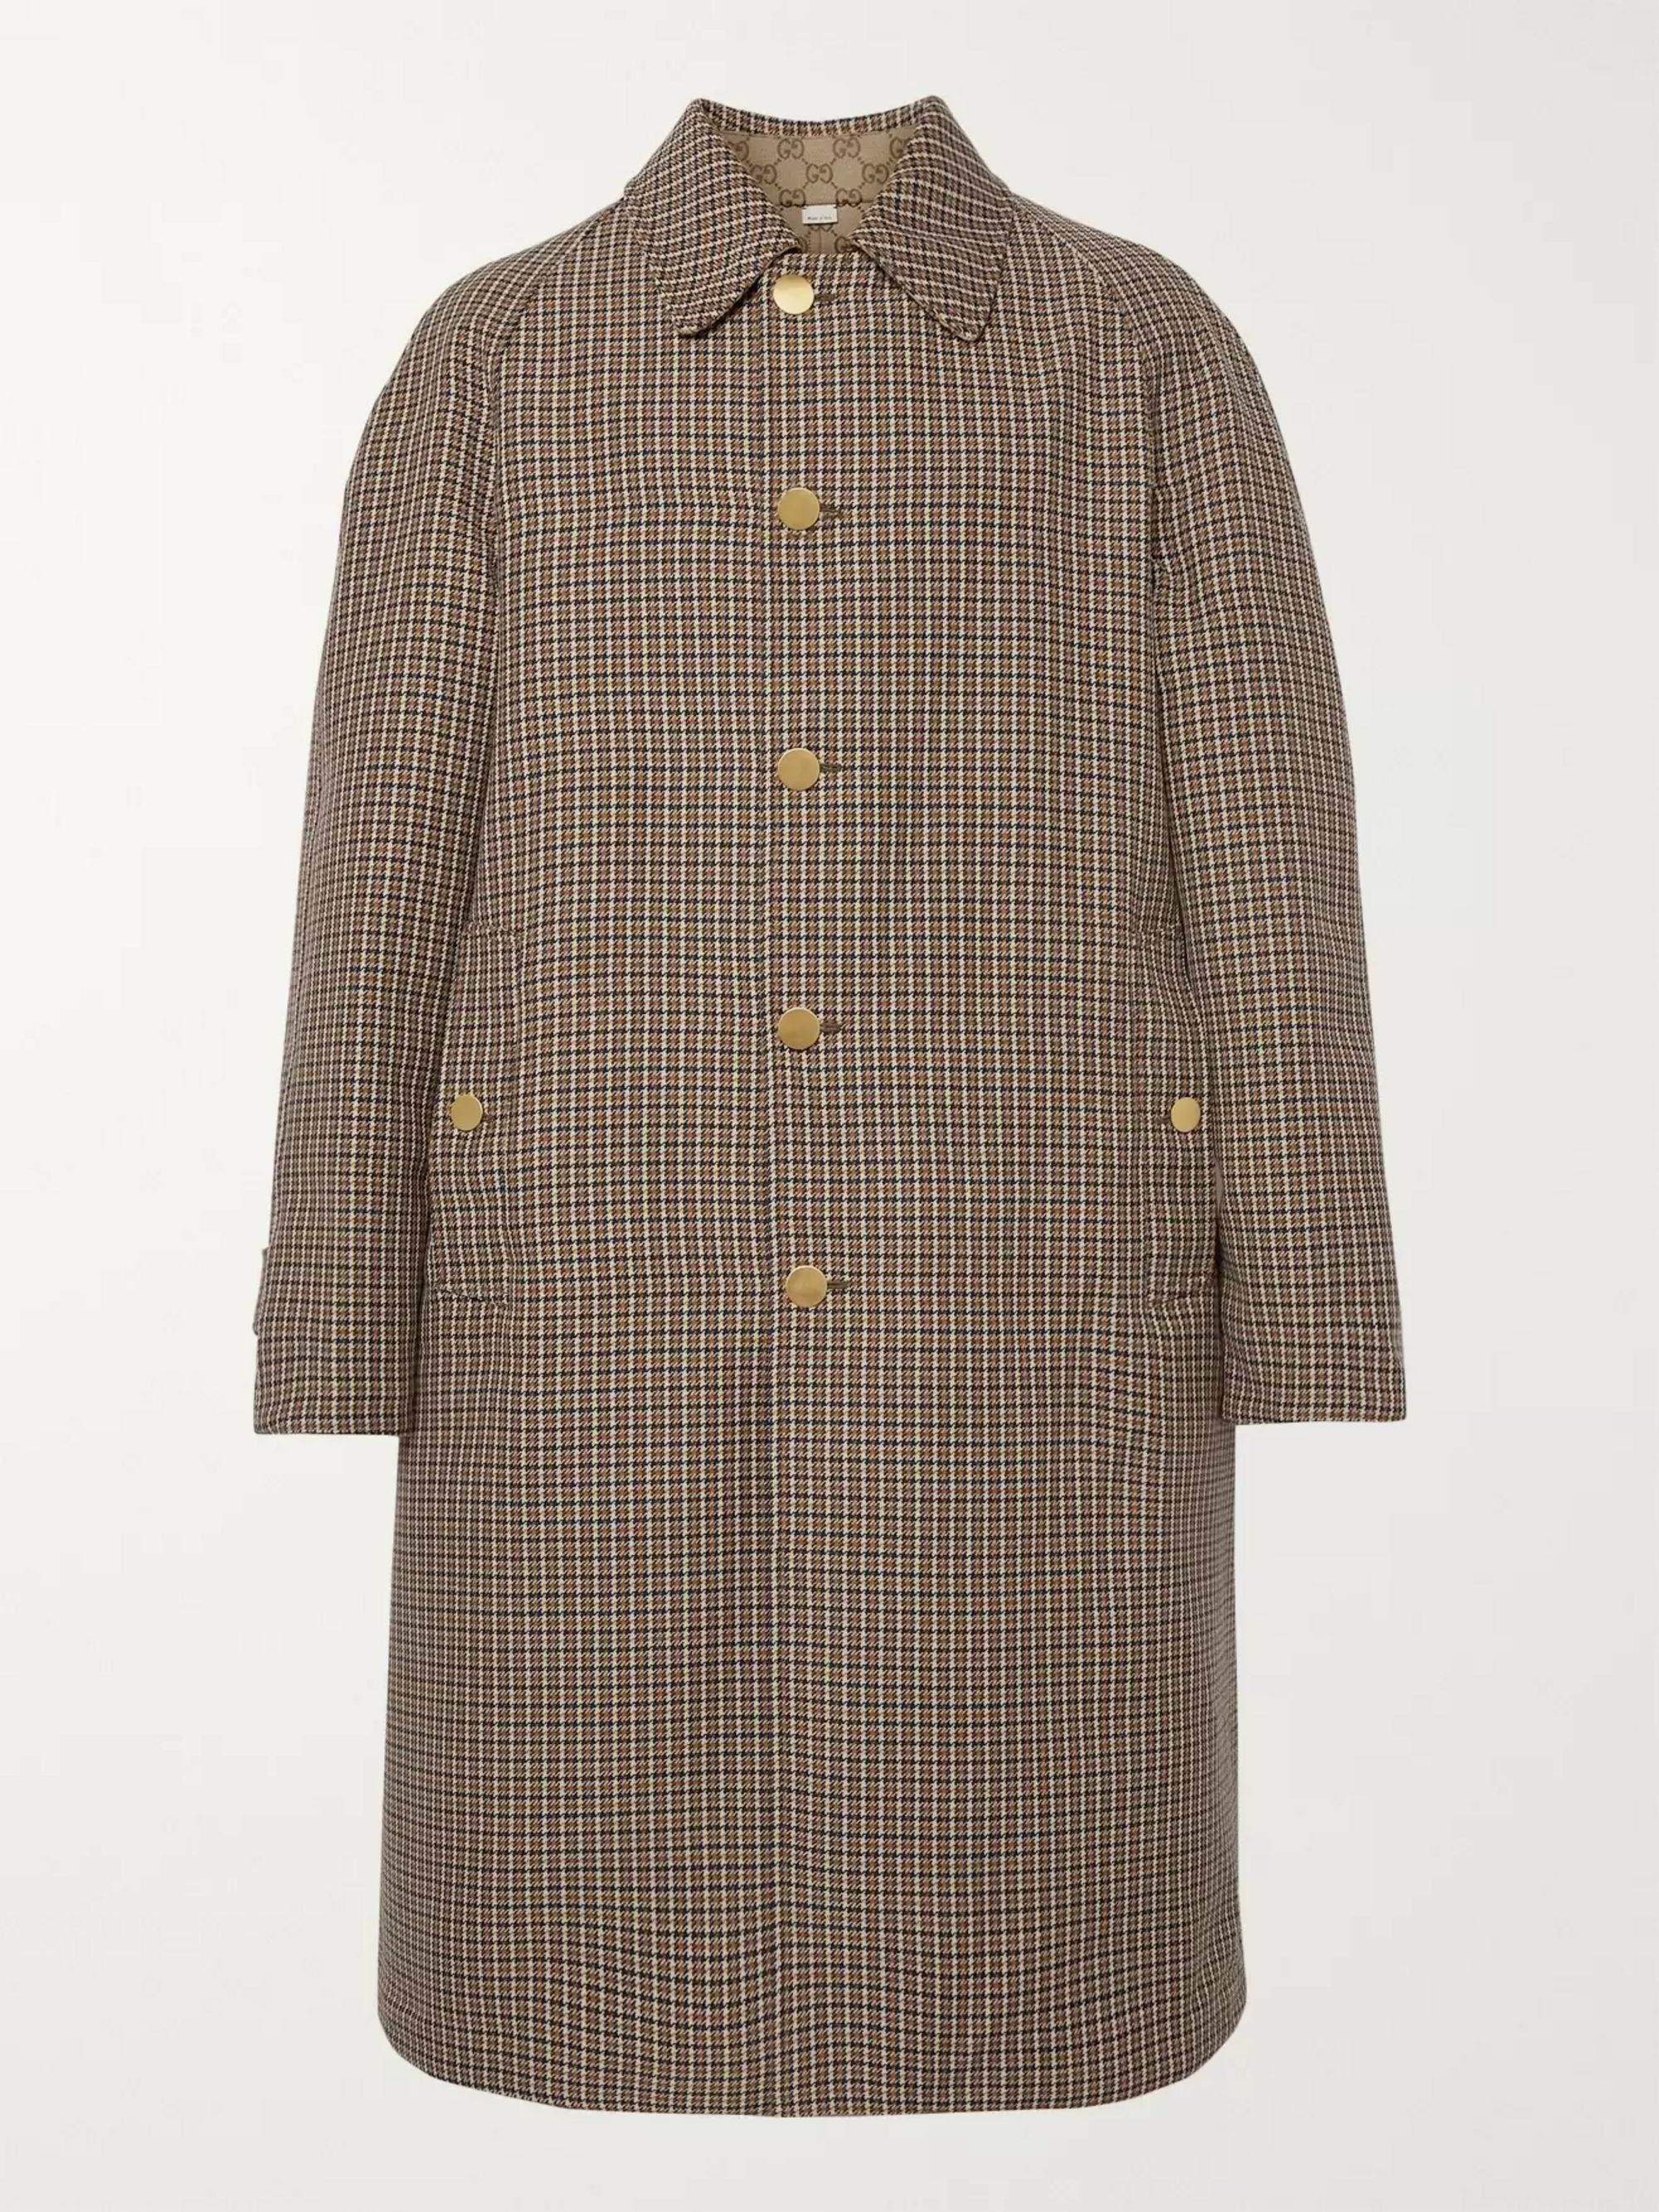 Gucci Reversible Logo-Jacquard Cotton-Blend Canvas and Houndstooth Wool Coat